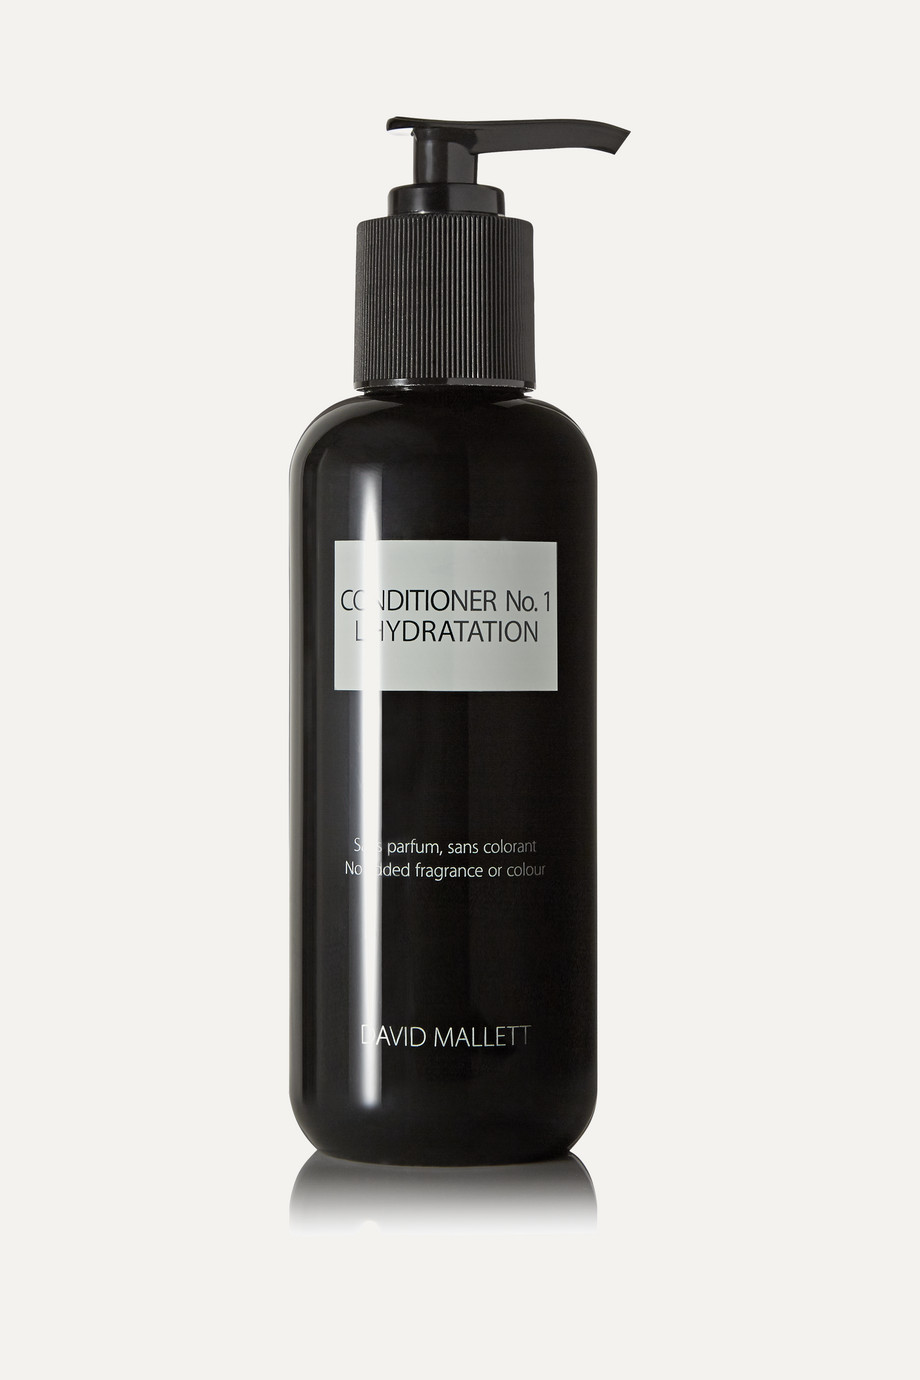 DAVID MALLETT Conditioner No.1: L'Hydration, 250ml